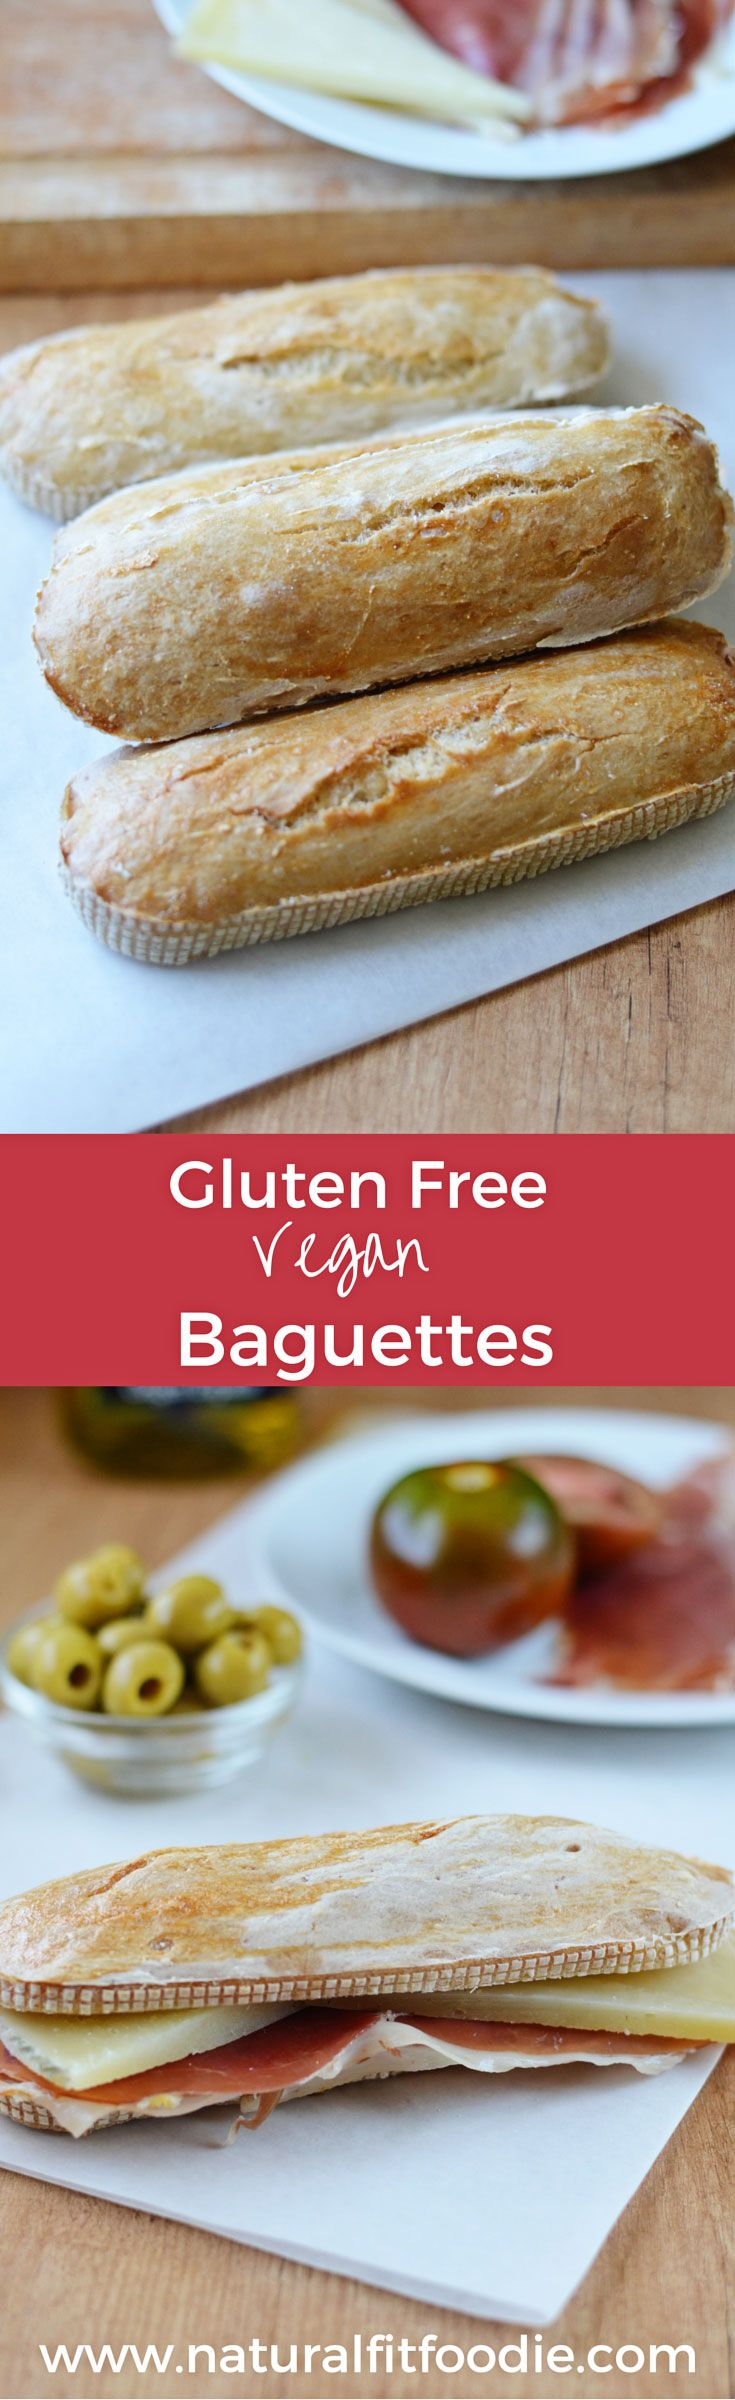 These mini gluten-free baguettes make the perfect portable sandwich. Take them to picnics, outdoor summer festivals you name it. Buckwheat flour yum